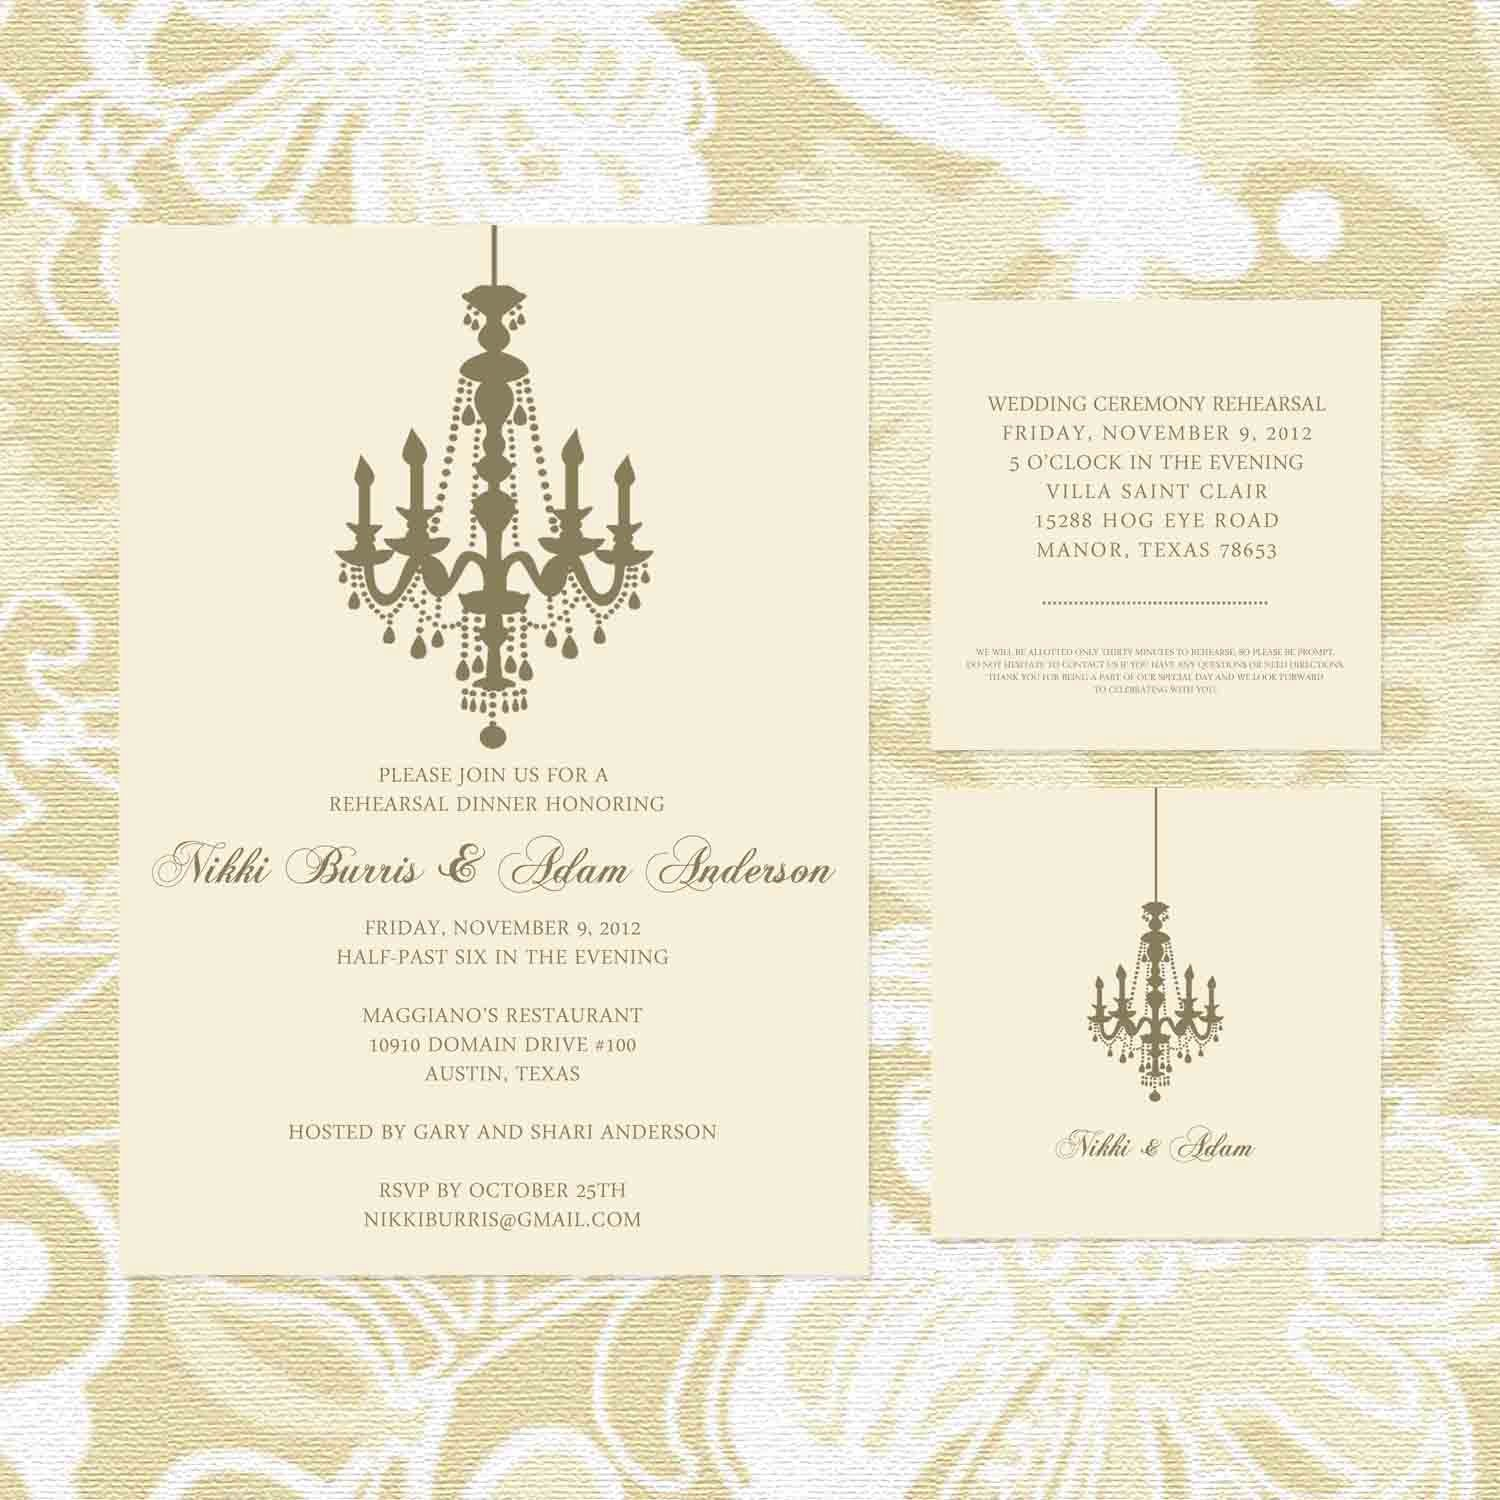 Rehearsal Dinner Invitation Wording Divorced Parents